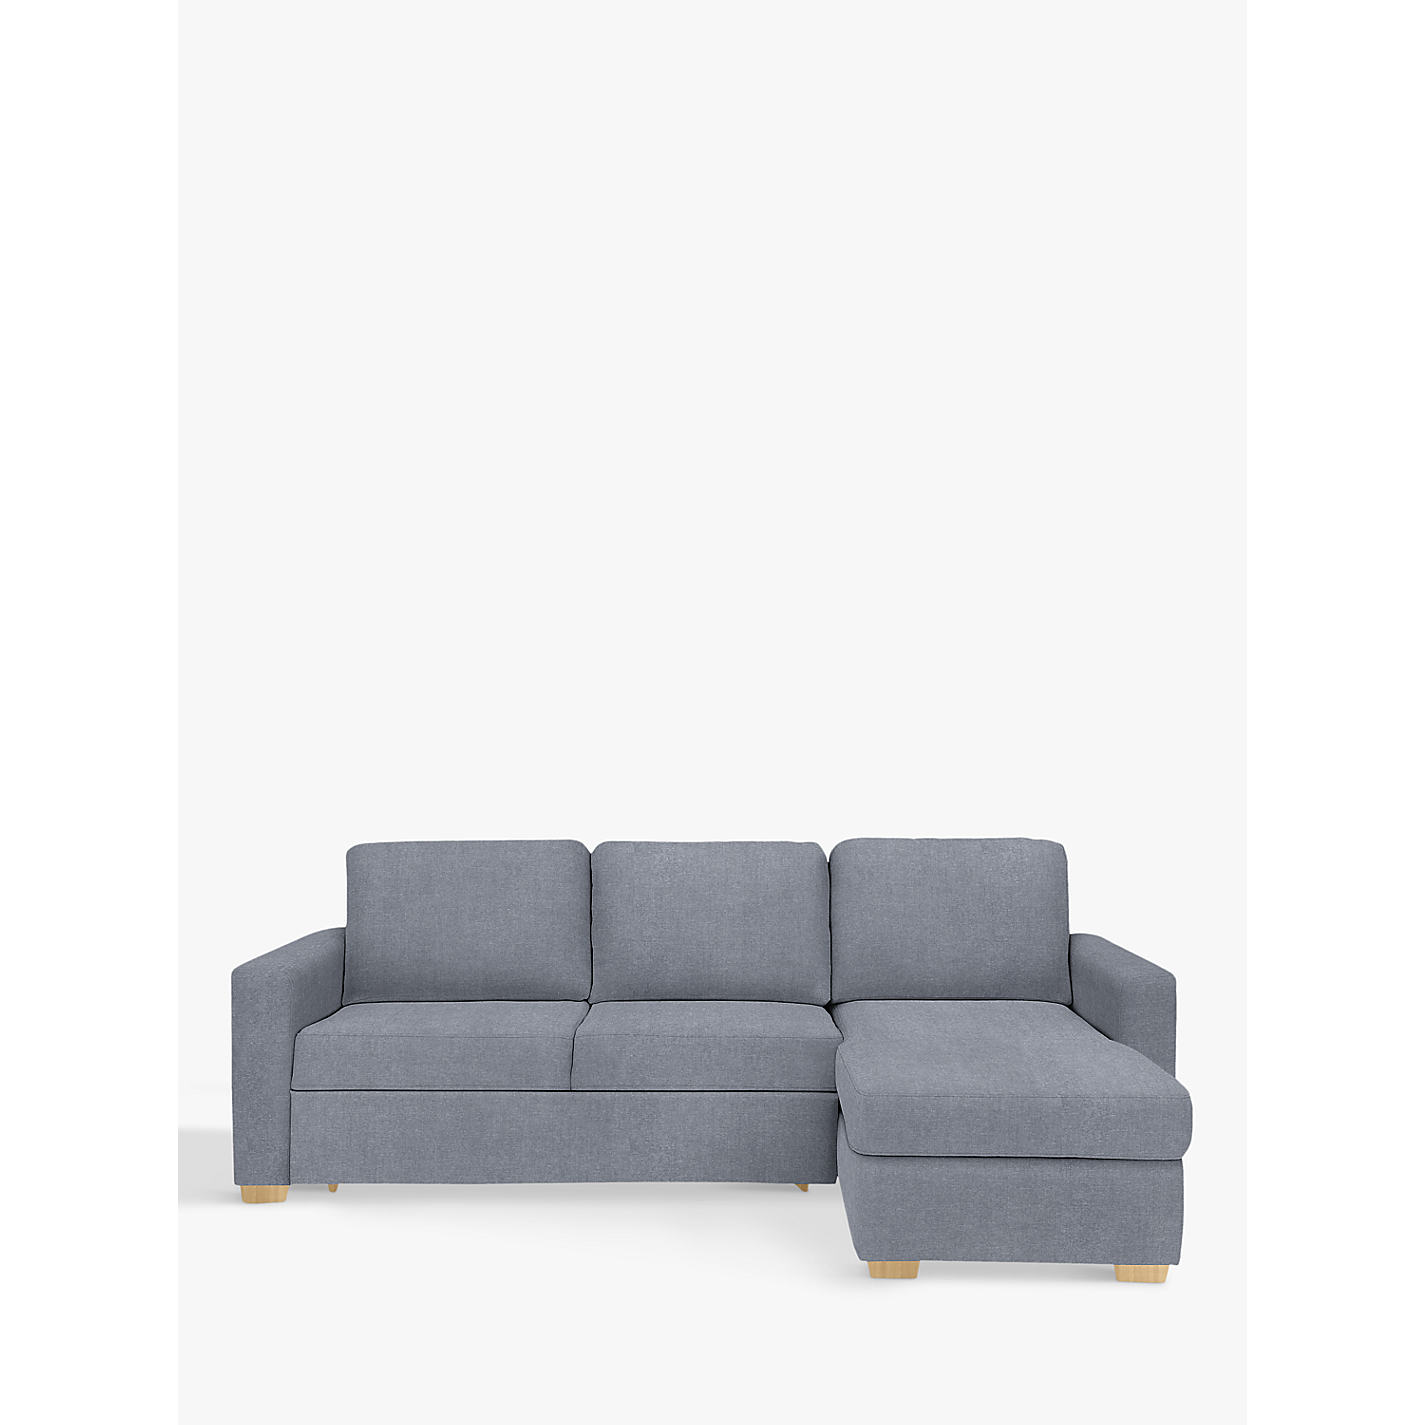 John lewis charlotte sofa leather sofa menzilperde net for Sofa bed 3 2